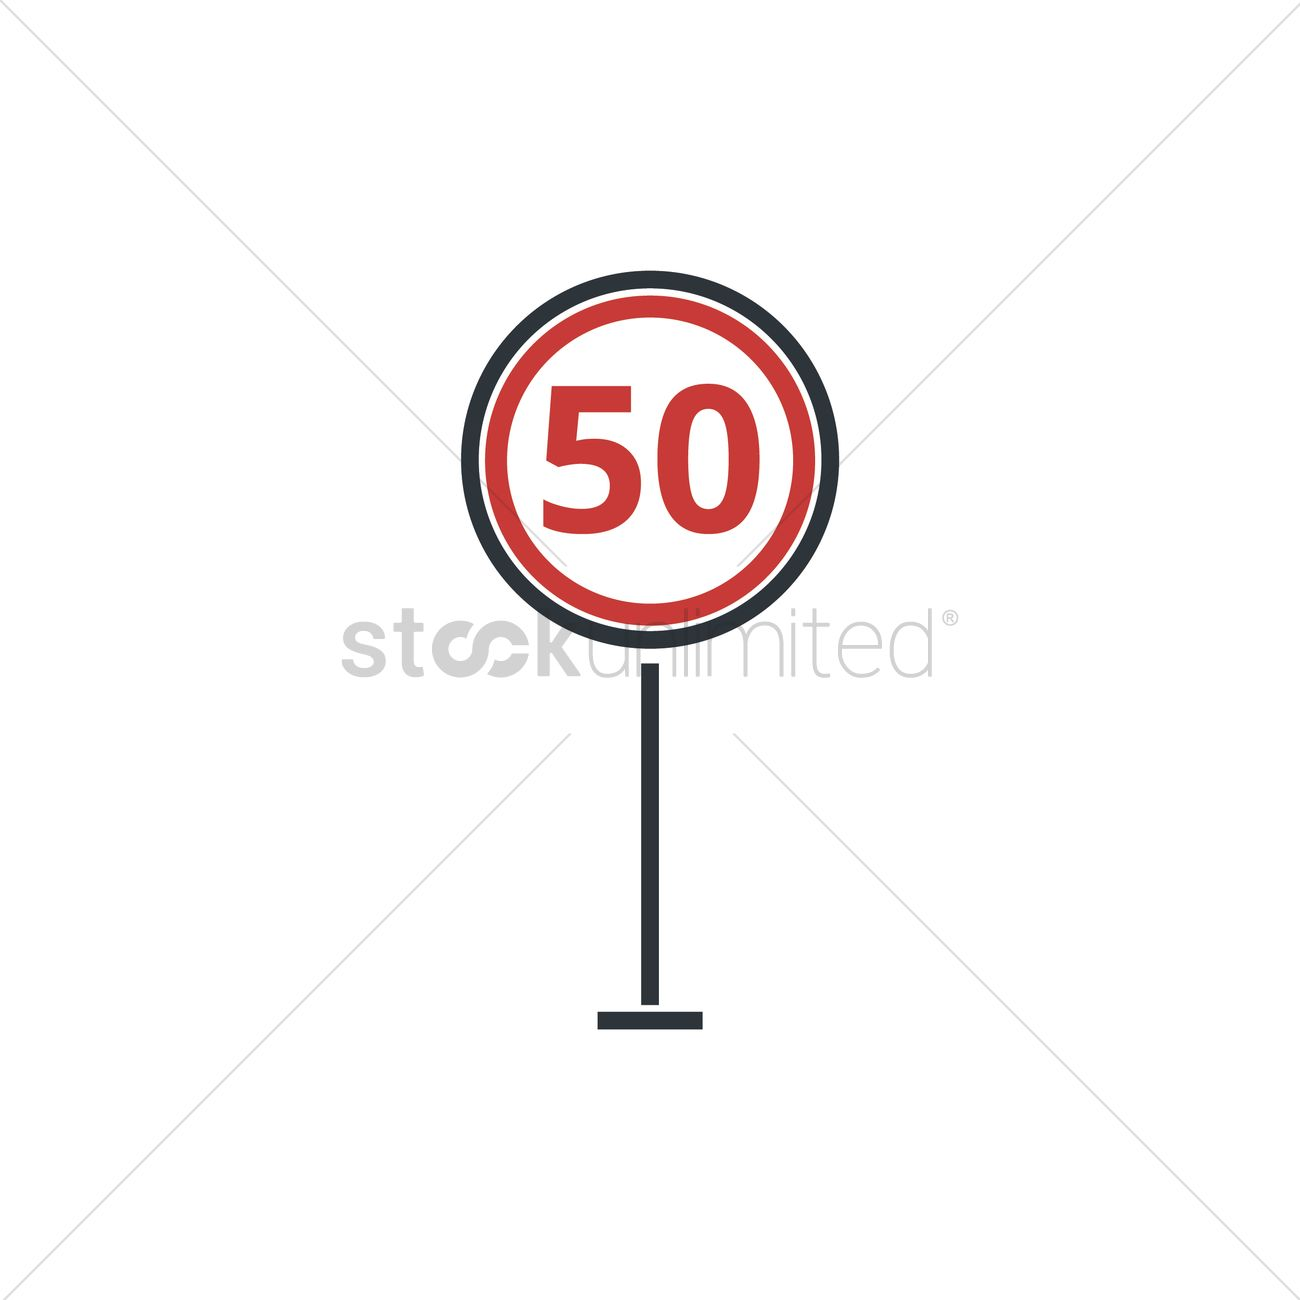 1300x1300 Speed Limit Sign Vector Image